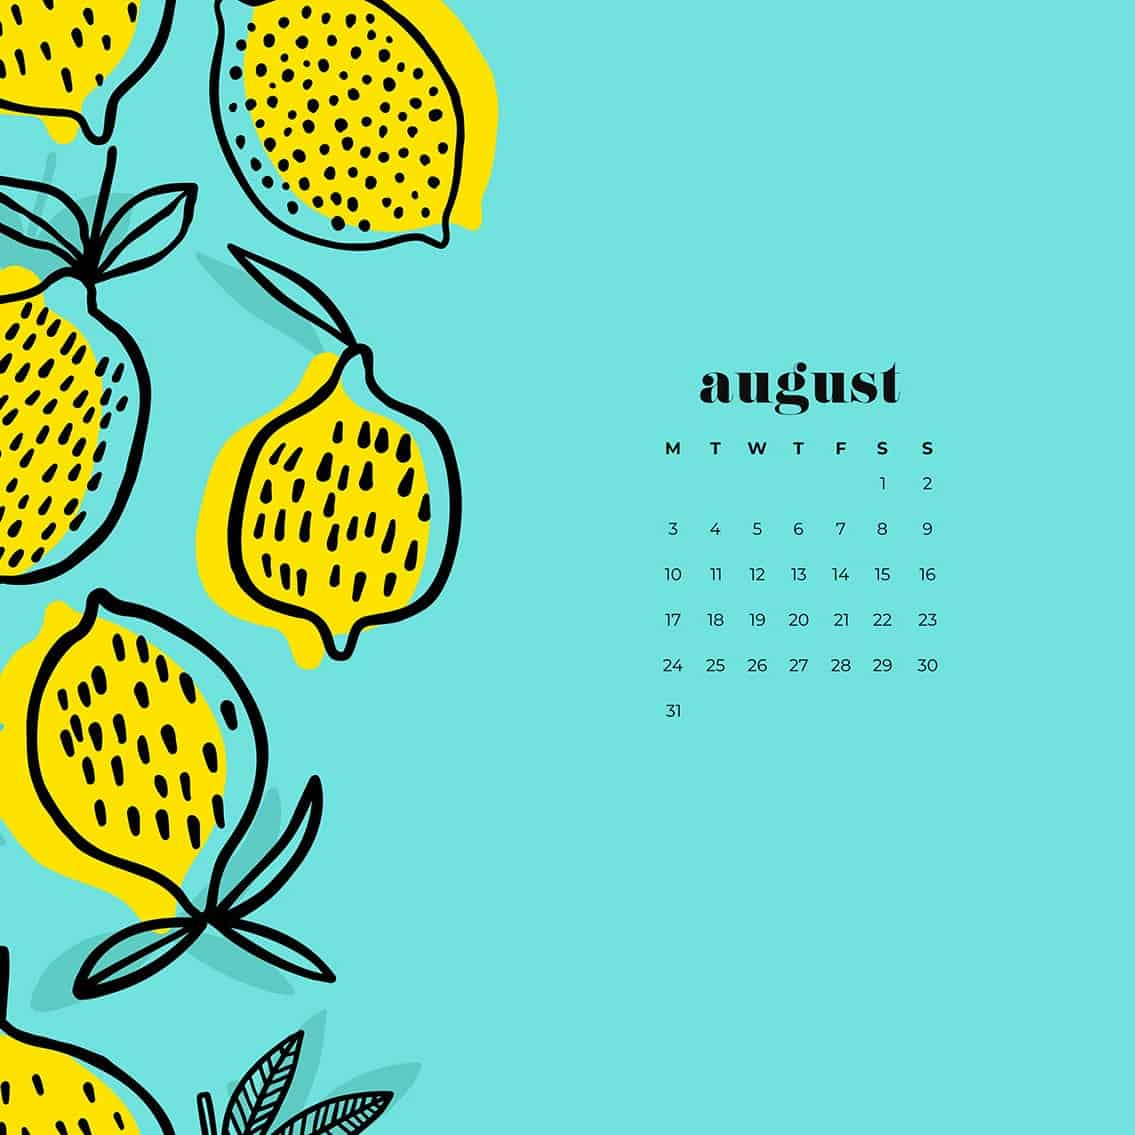 FREE August wallpapers 14 to choose from for desktop and phone 1135x1135